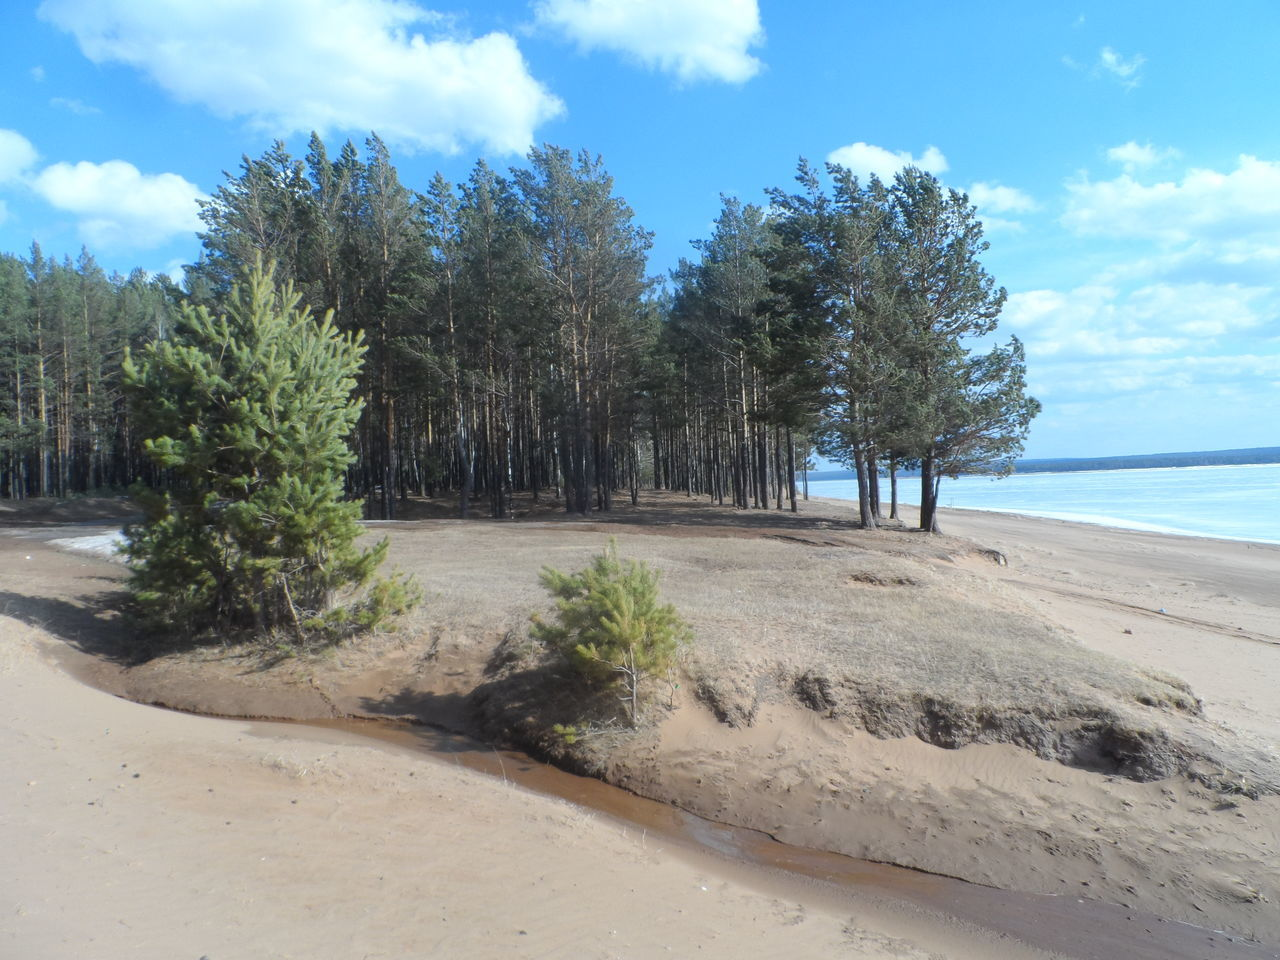 tree, sky, nature, sand, cloud - sky, tranquil scene, tranquility, beauty in nature, day, scenics, beach, no people, outdoors, water, growth, sea